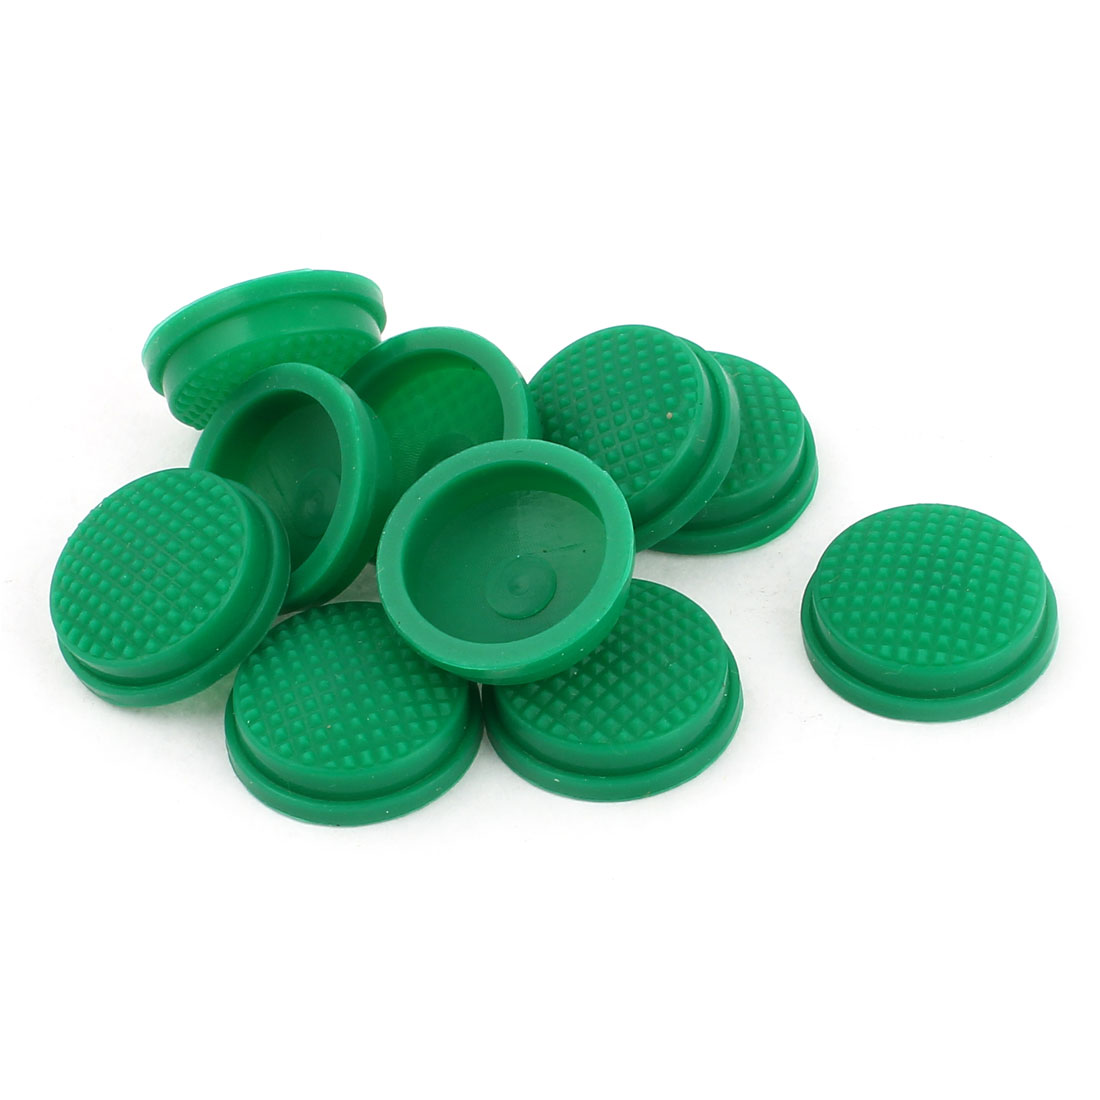 10pcs 17mm Dia Protective Waterproof Silicone Switch Cover Guard Green